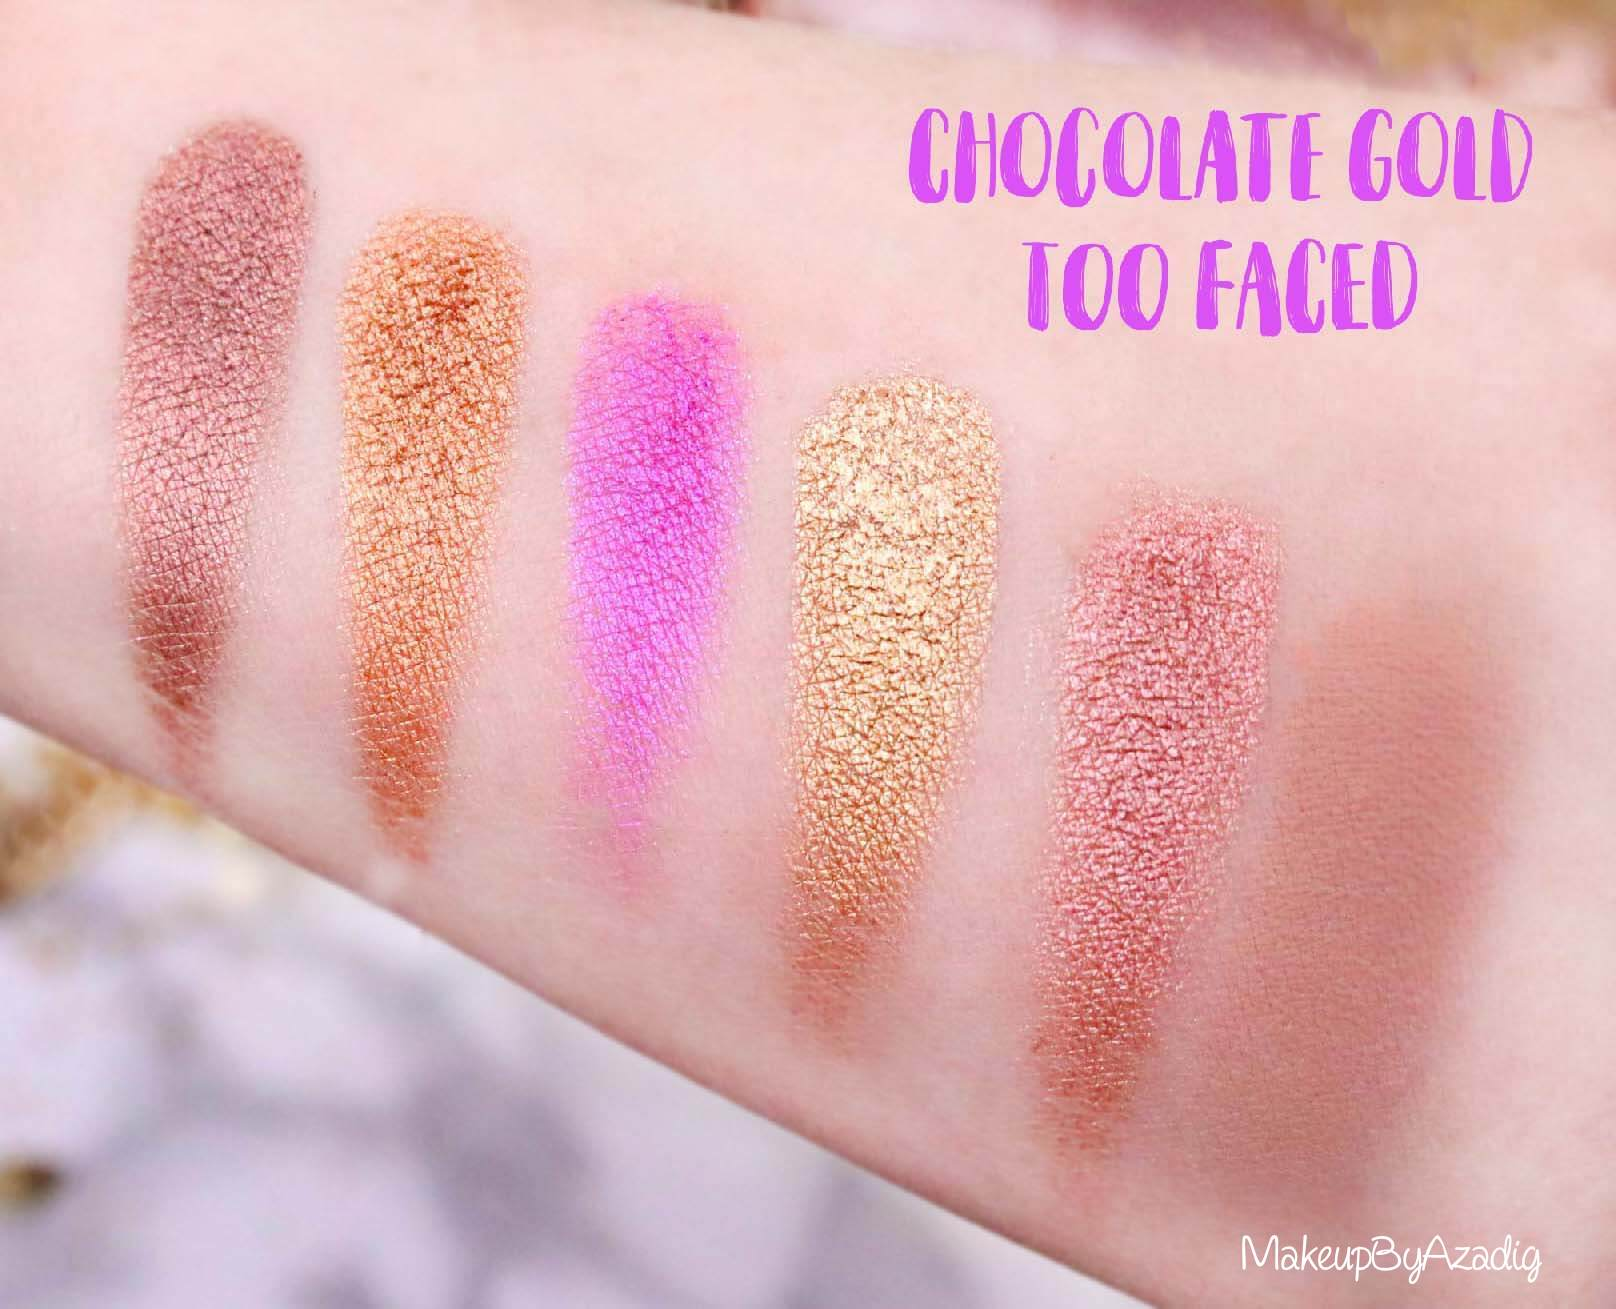 metallise-revue-palette-too-faced-chocolate-gold-review-swatch-swatches-avis-prix-makeupbyazadig-influencer-miniature-2